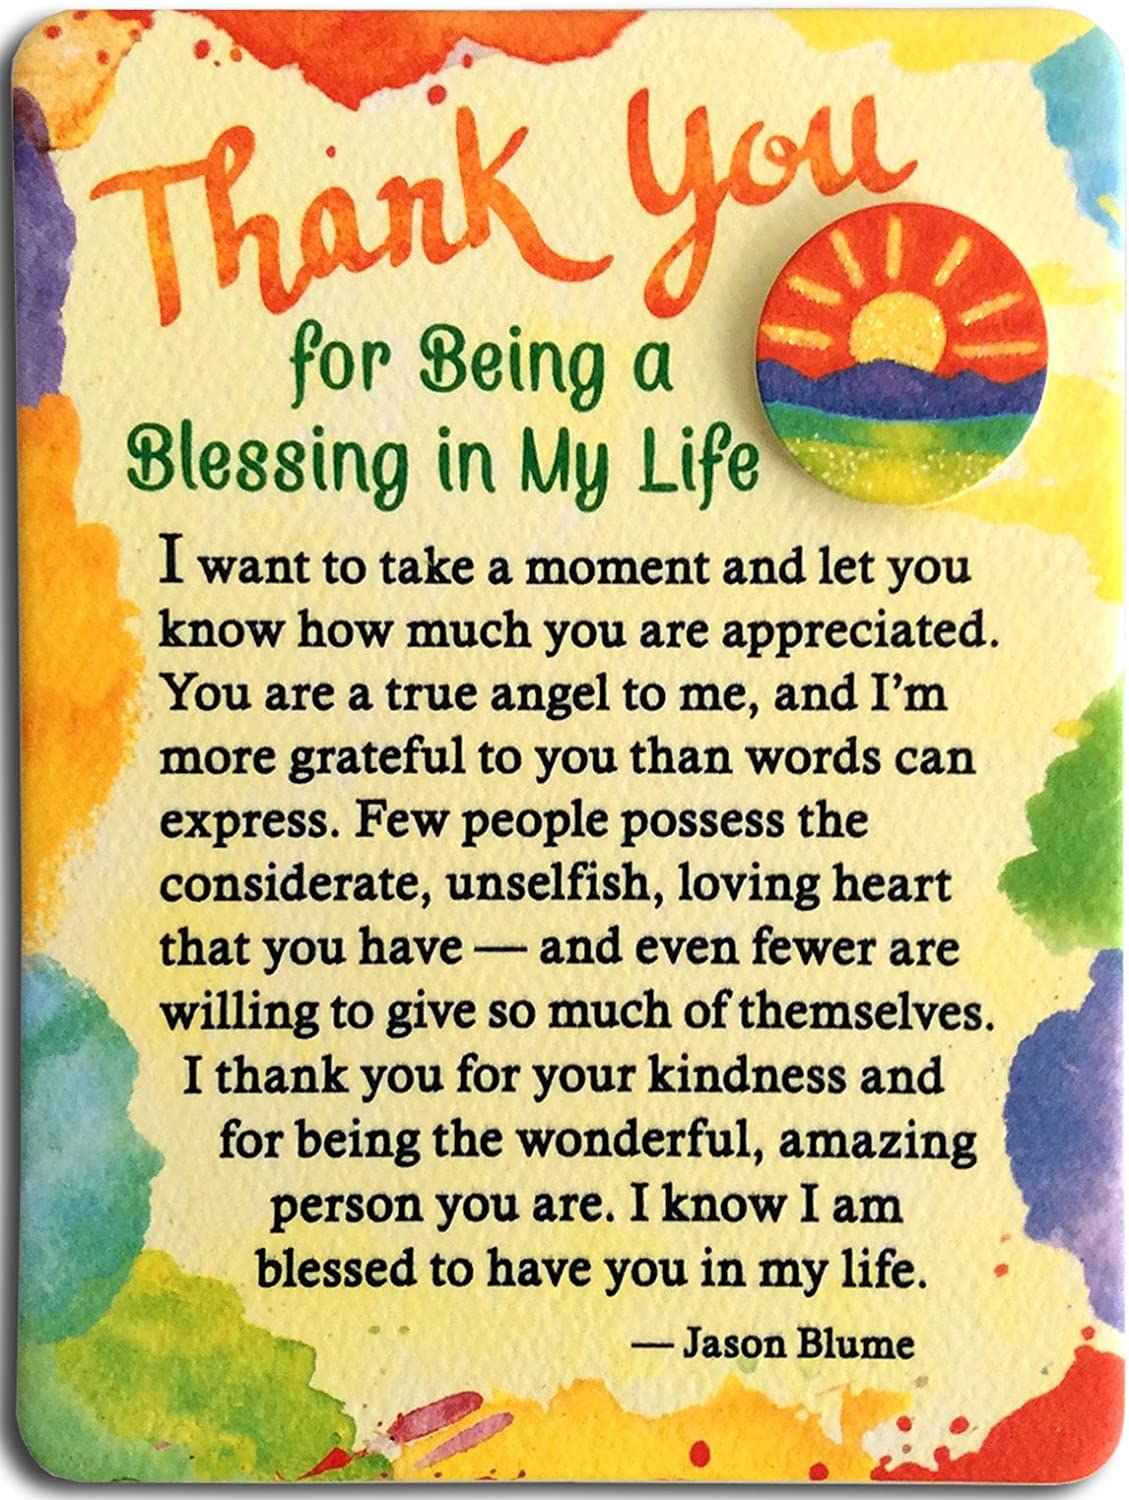 "Blue Mountain Arts Miniature Easel Print with Magnet ""Thank You for Being a Blessing in My Life"" 4.9 x 3.6 in., Sweet ""Thank You"" Gift to Express Gratitude to Someone Who Is a True Angel to You"